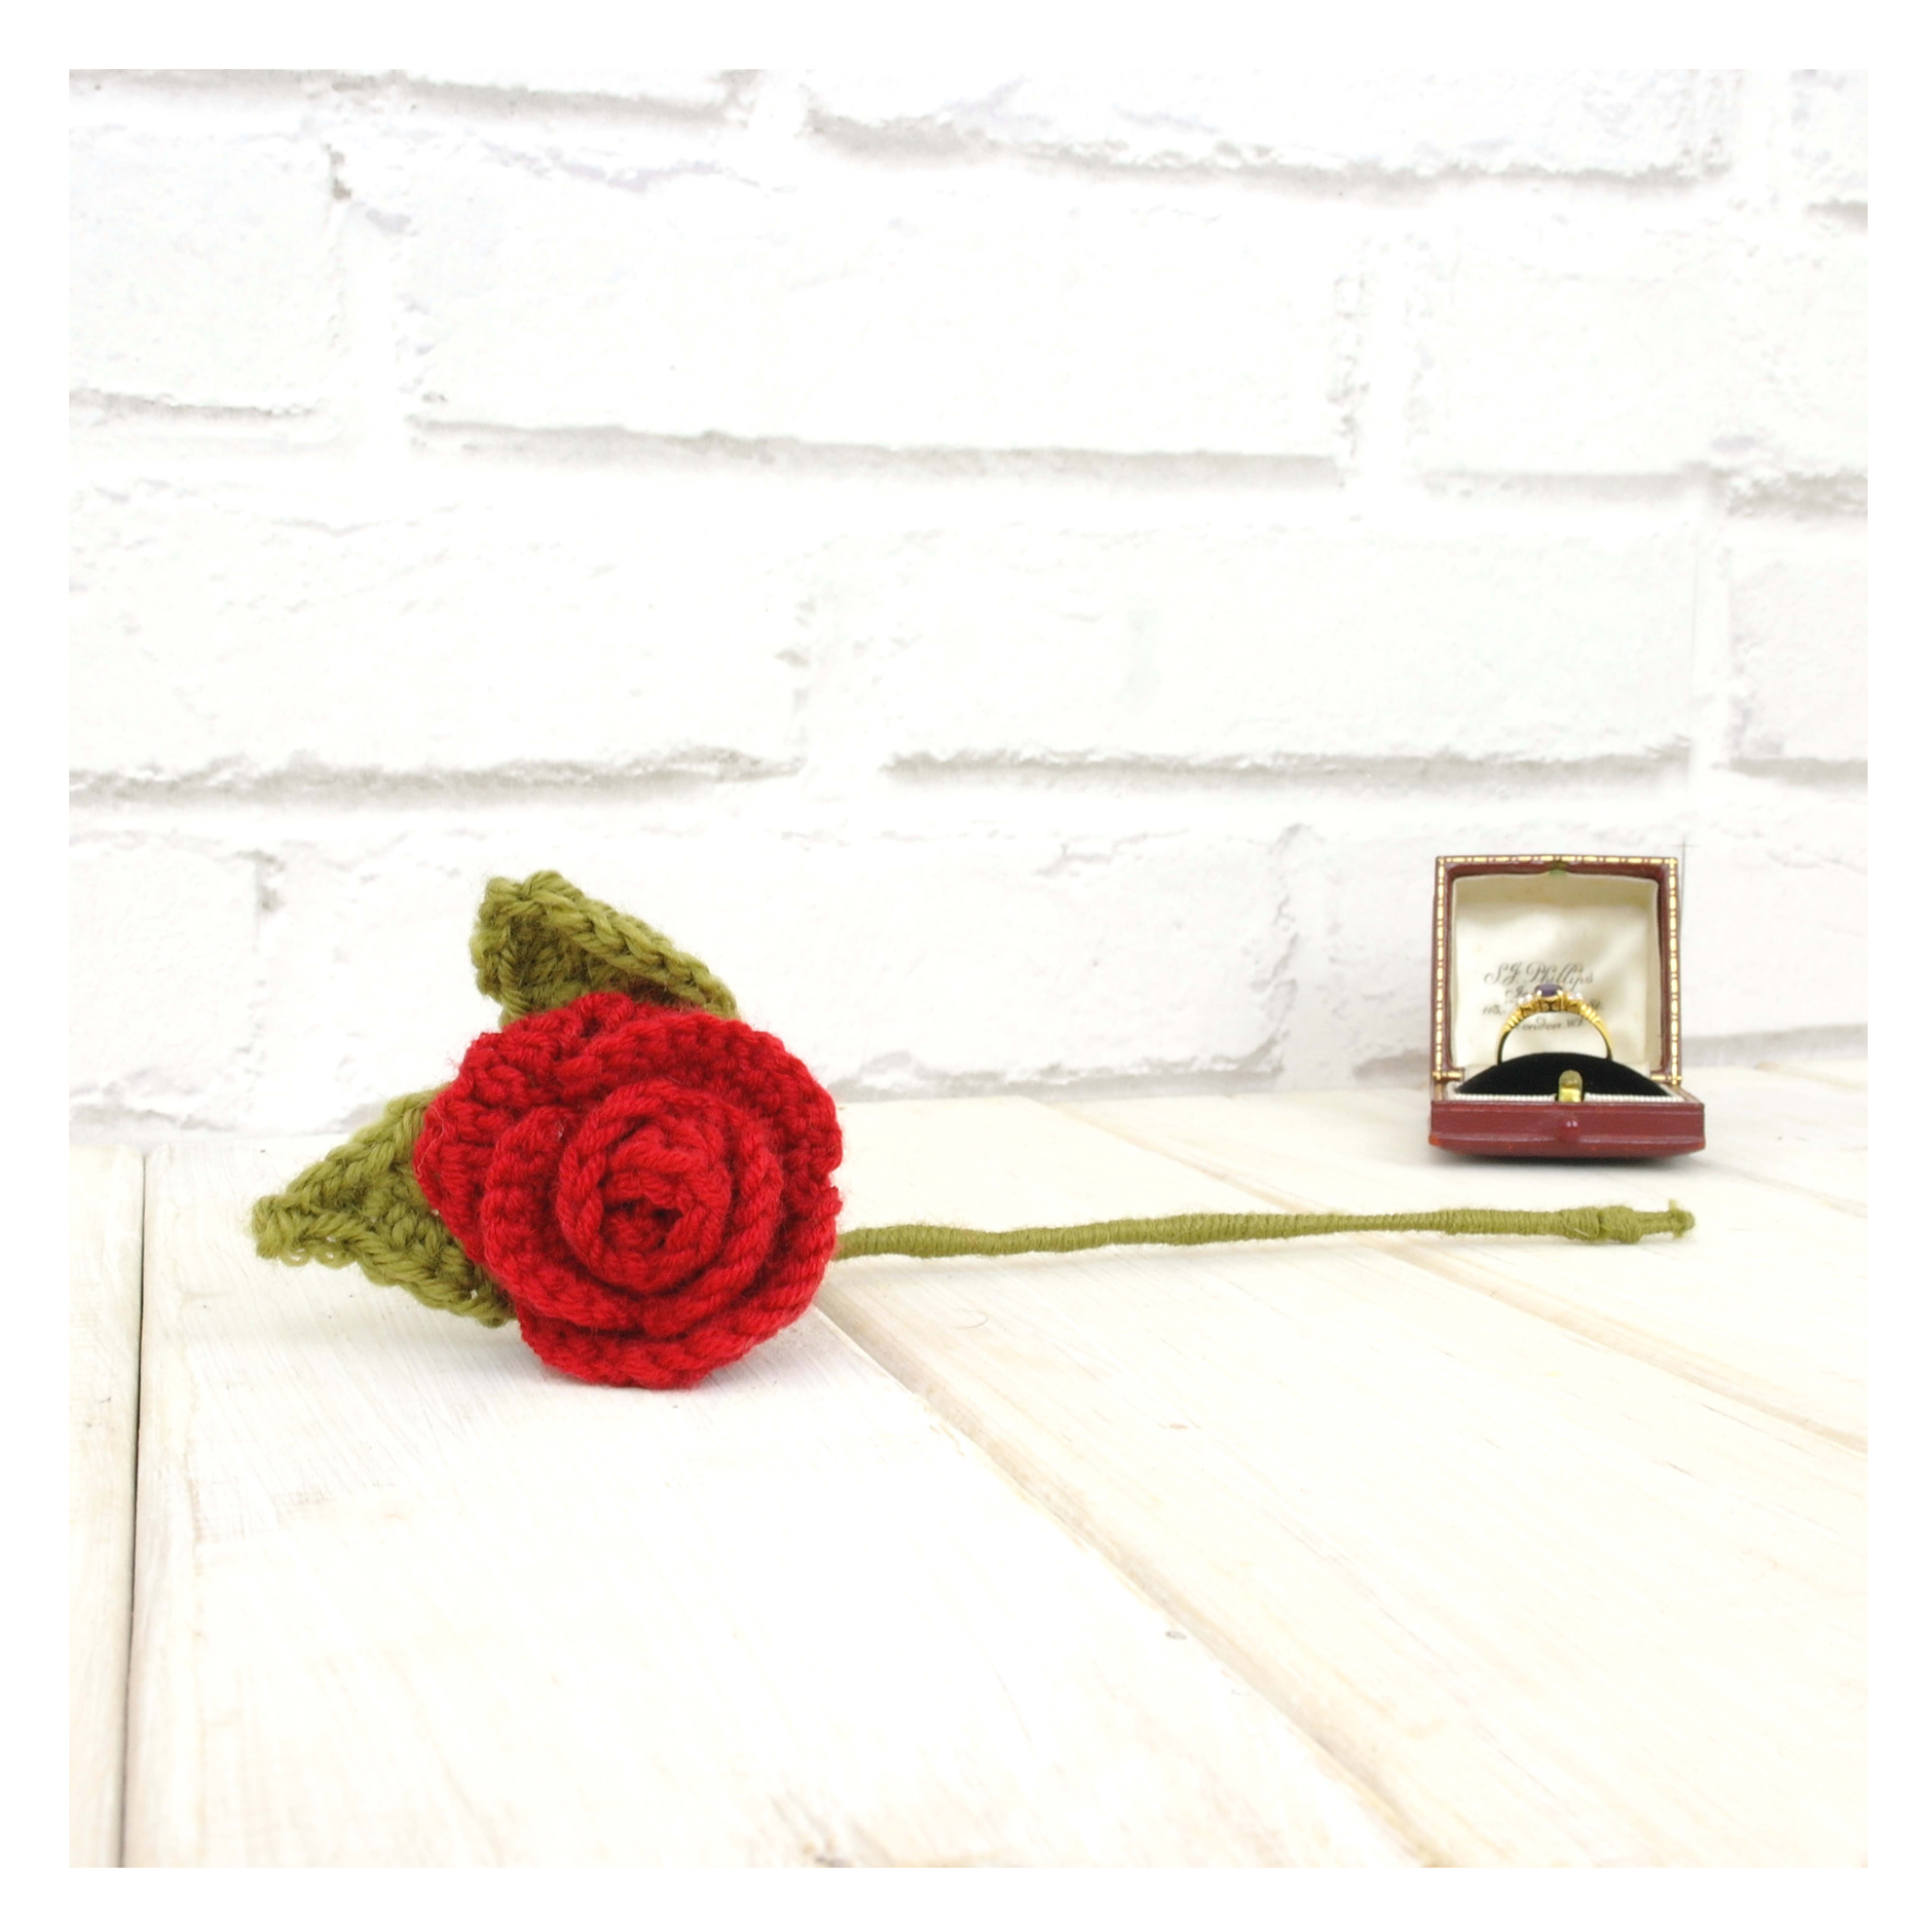 eternal-red-rose-handmade-in-britain-knitted-chichimoi-chi-chi-moi-1